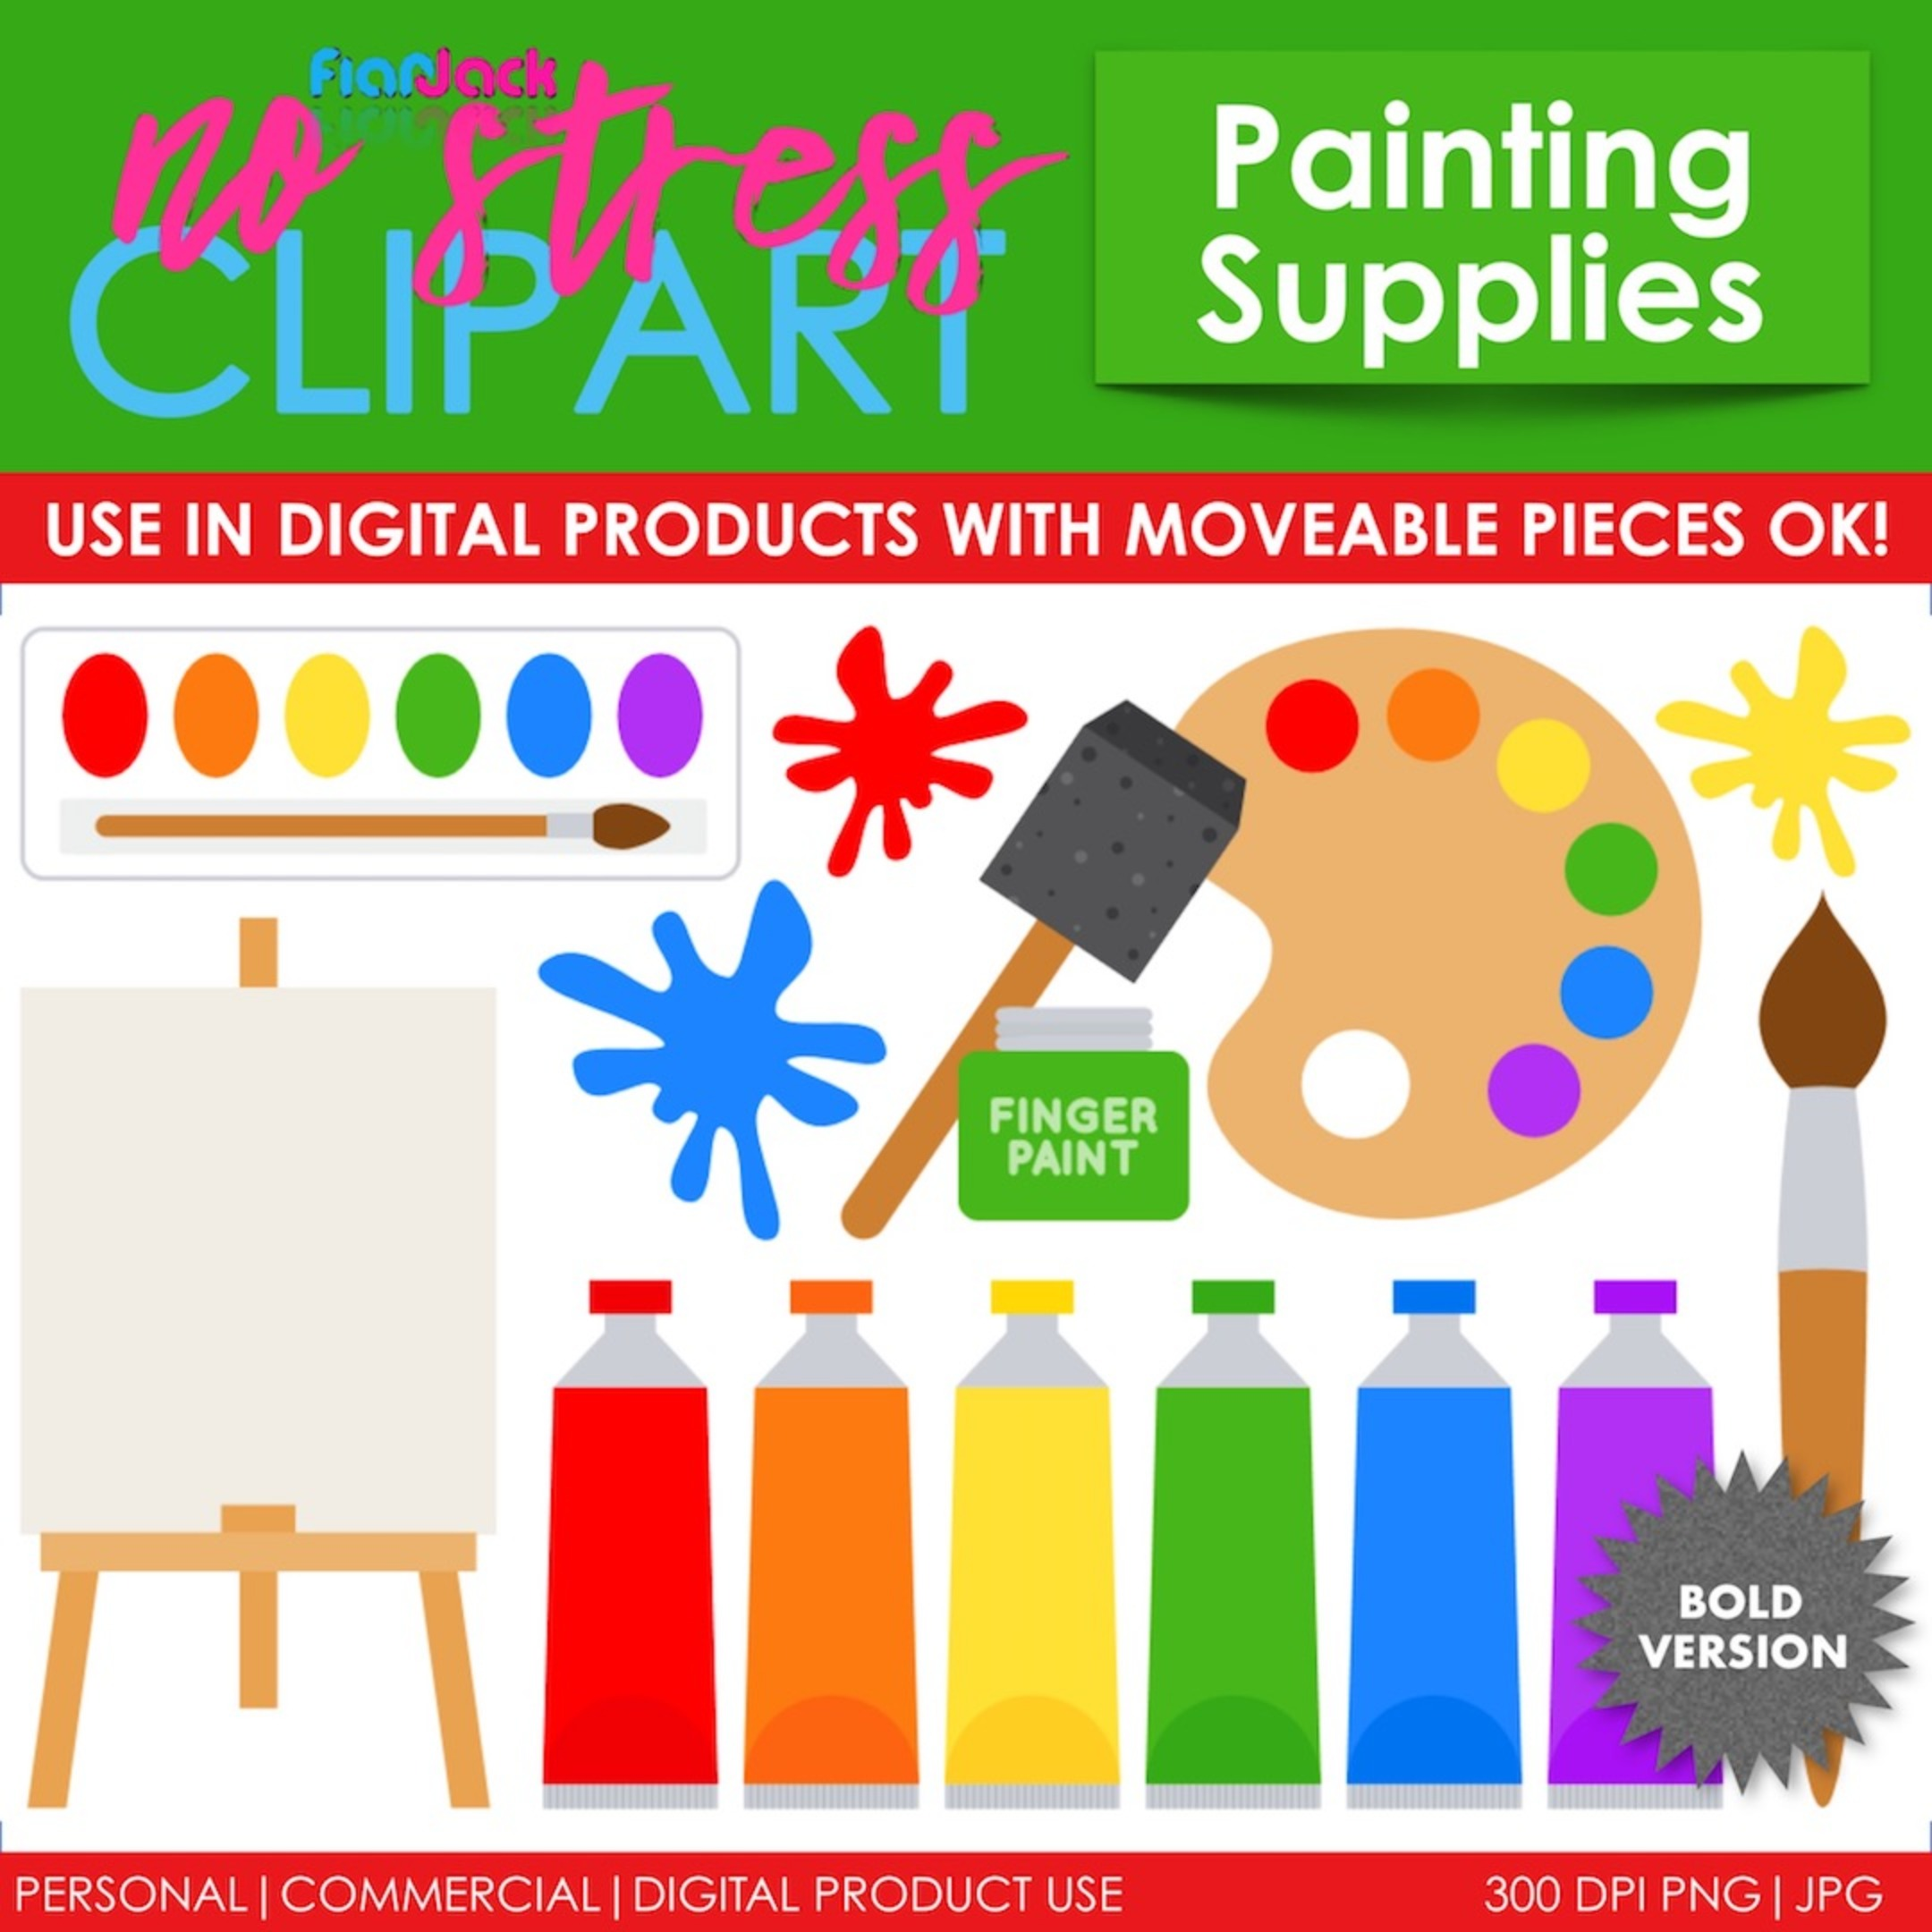 Painting Supplies (Bold Version)